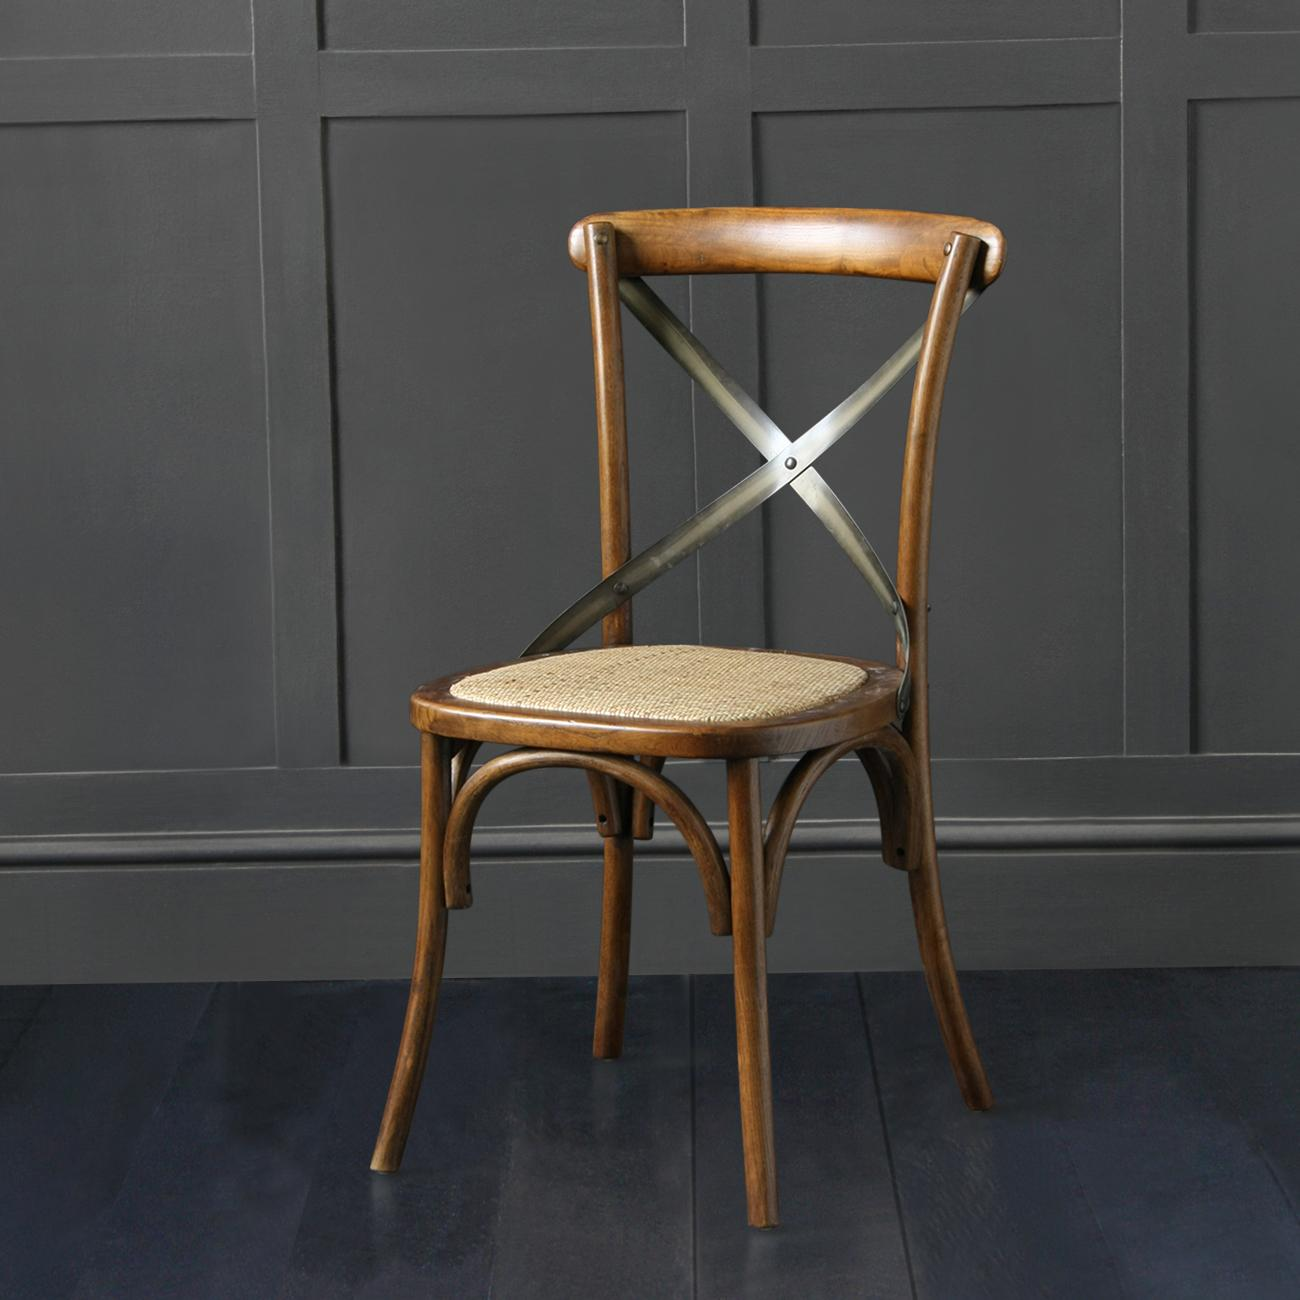 What Does Your Dining Chair Style Say About Your Personality?